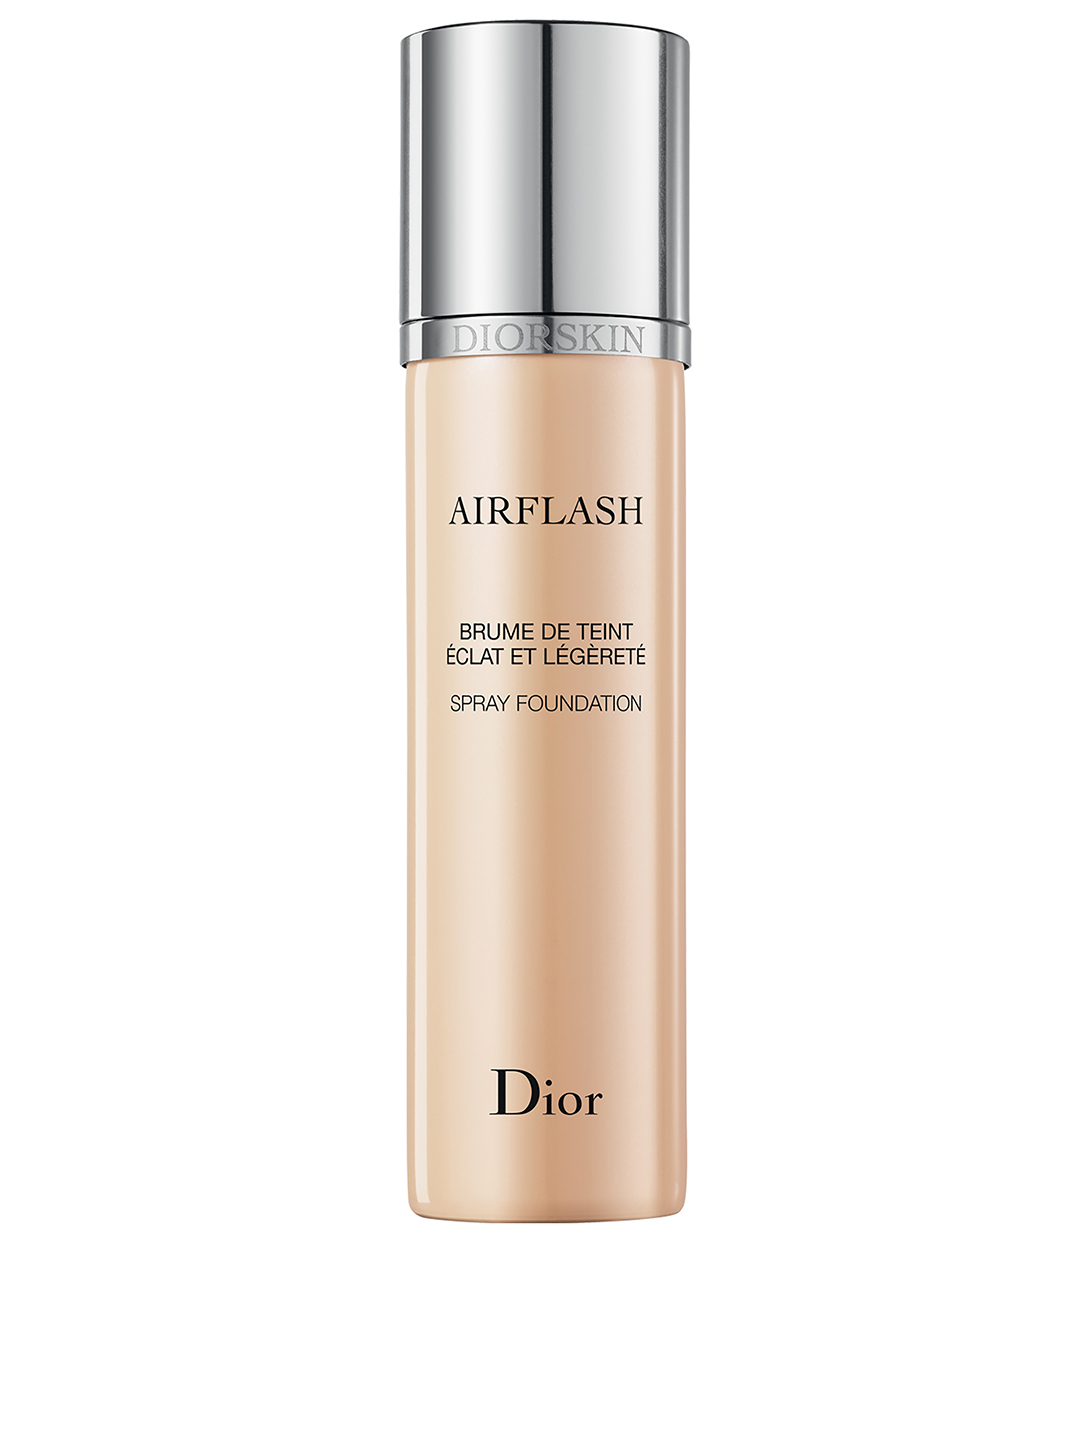 DIOR Diorskin Airflash Spray Foundation Beauty Neutral